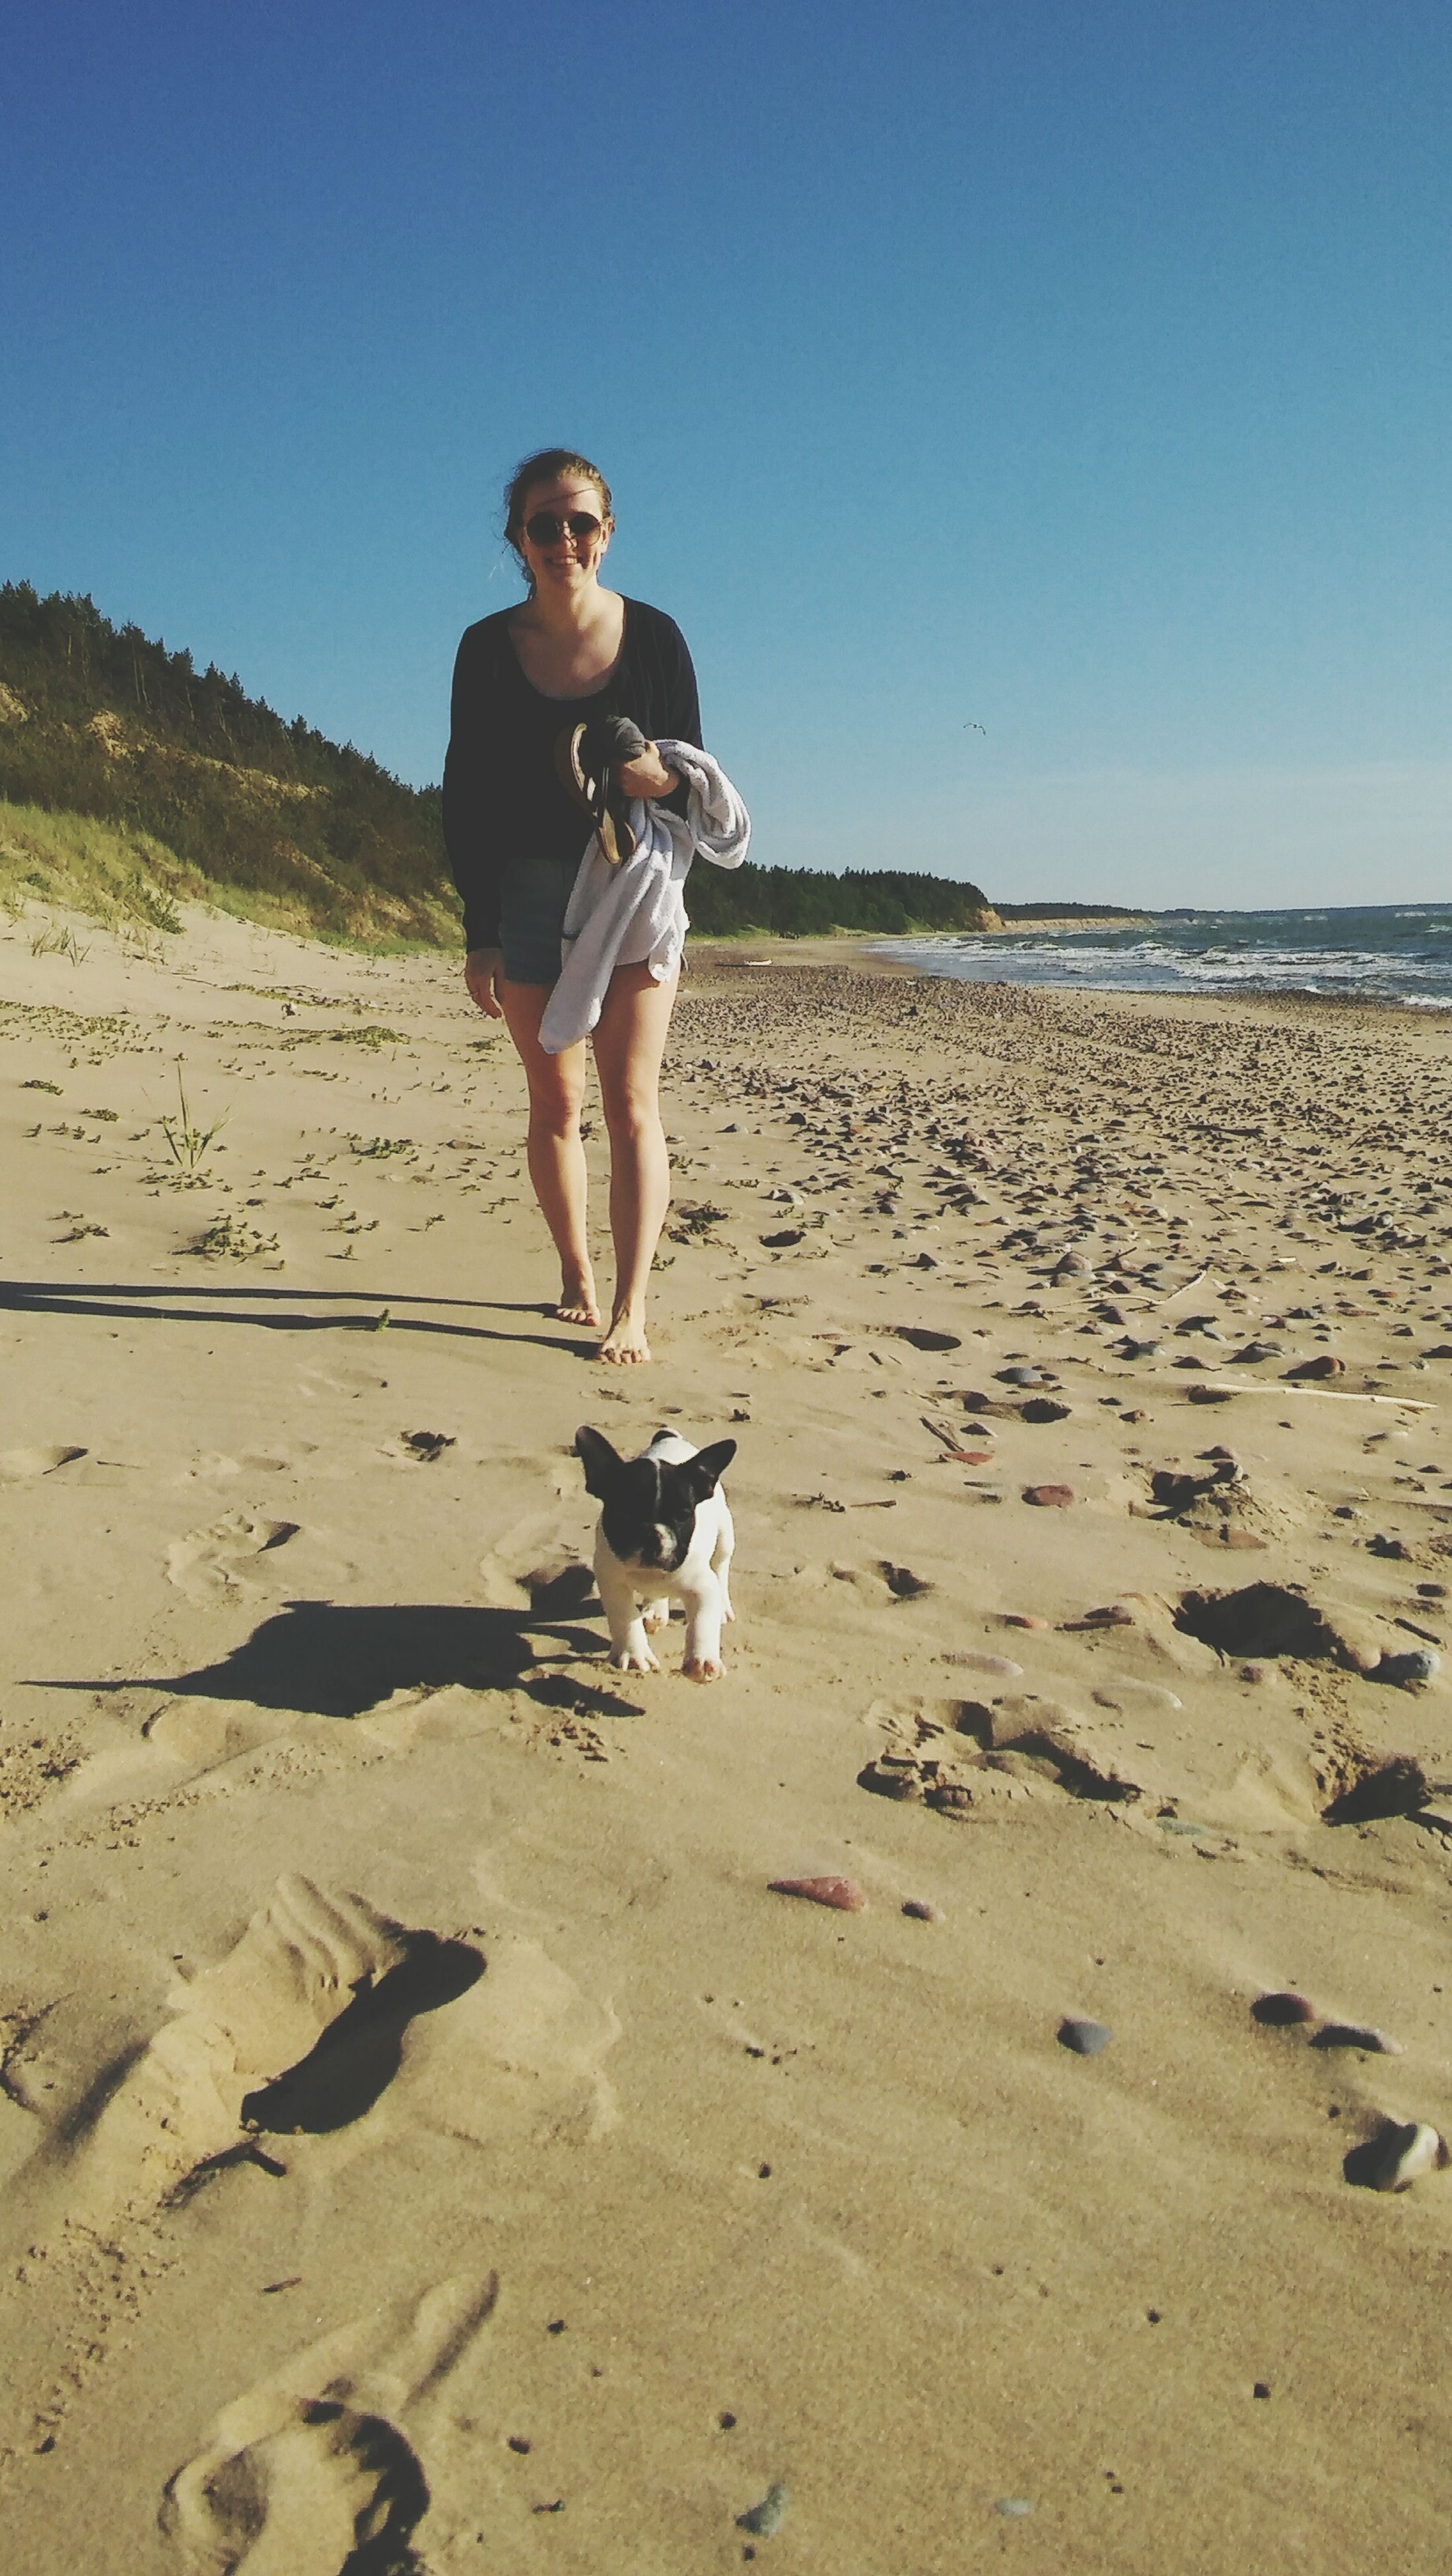 beach, sand, full length, pets, young adult, real people, young women, one animal, domestic animals, leisure activity, clear sky, dog, one person, animal themes, lifestyles, outdoors, walking, casual clothing, front view, nature, mammal, sky, sunlight, day, shadow, beauty in nature, energetic, people